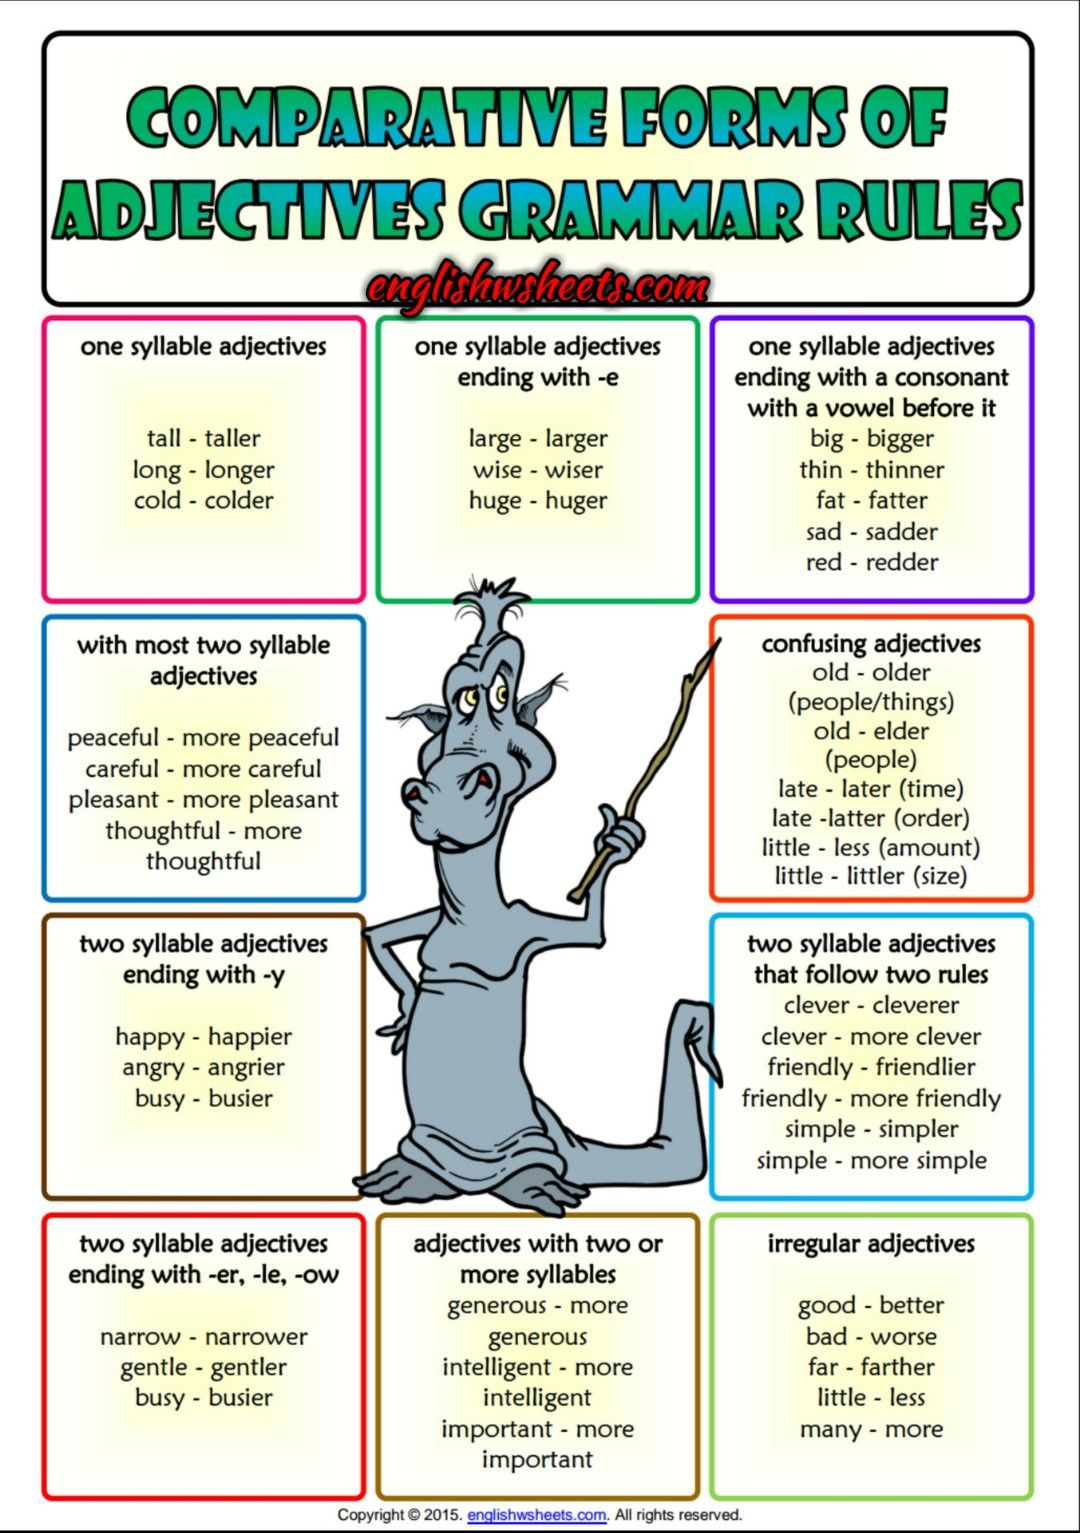 Comparatives Rules Esl Printable Classroom Poster For Kids Printable Classroom Posters Comparative Adjectives Printable Worksheets [ 1533 x 1080 Pixel ]